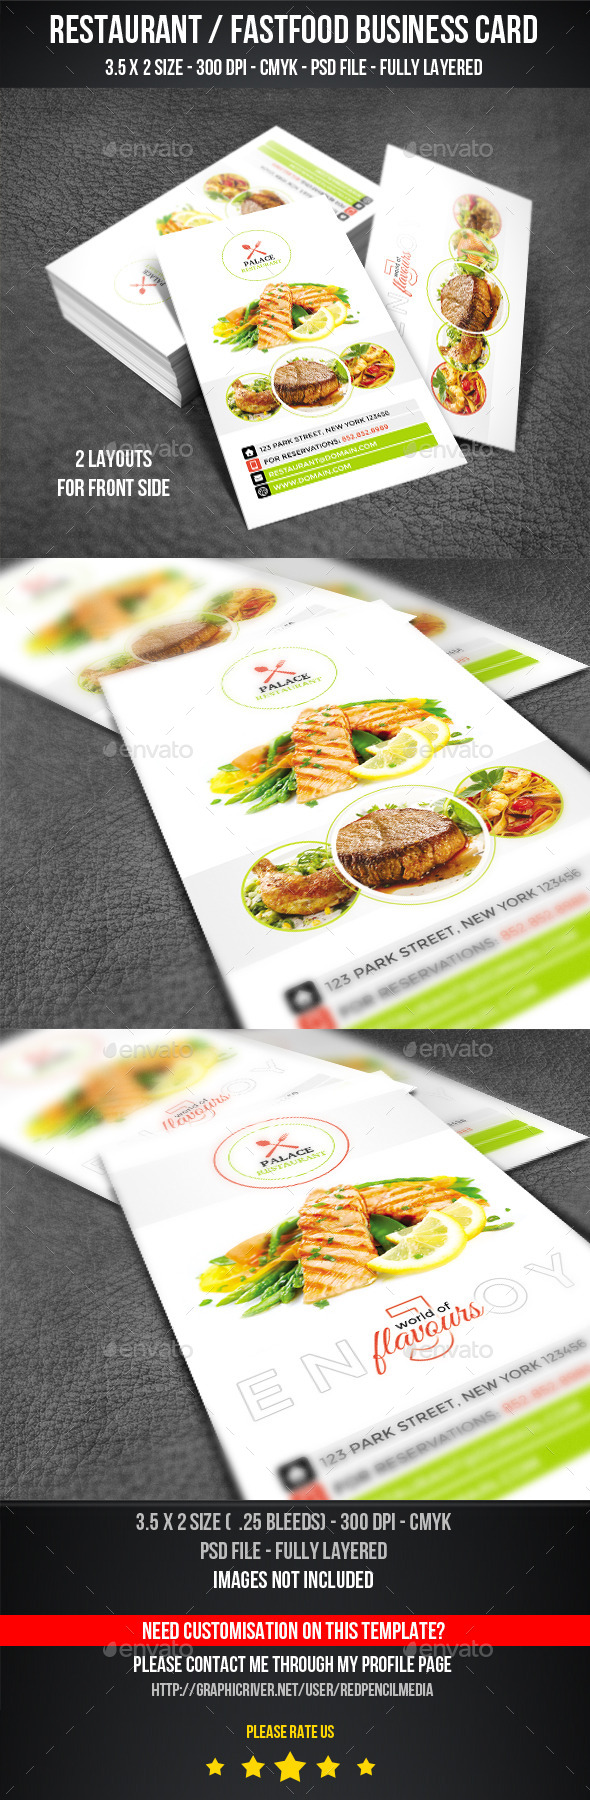 GraphicRiver Restaurant Business Card 11226708